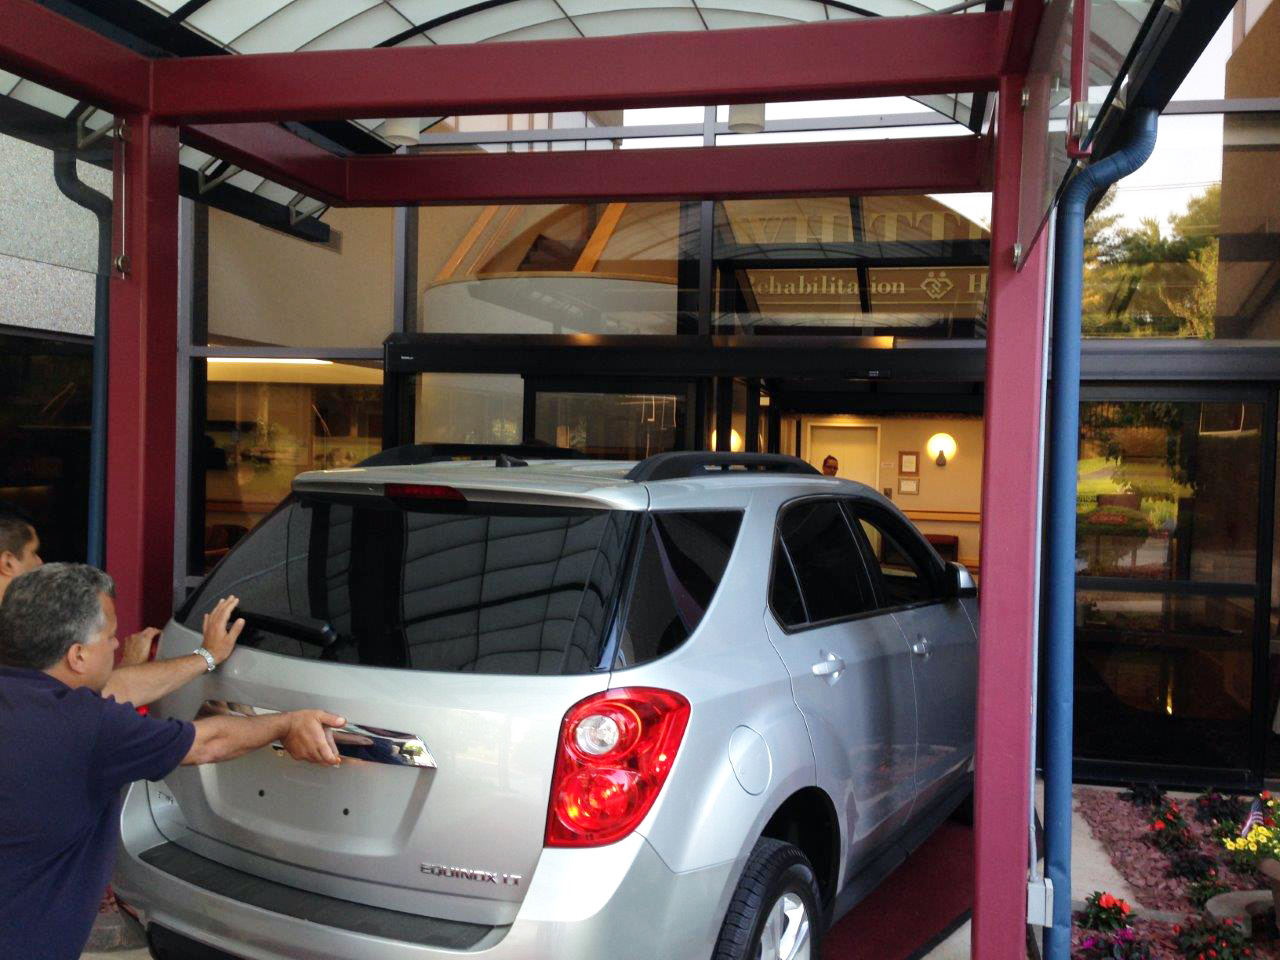 Whittier Way, undergoing renovations, receives a new 5-passenger Chevy Equinox SUV